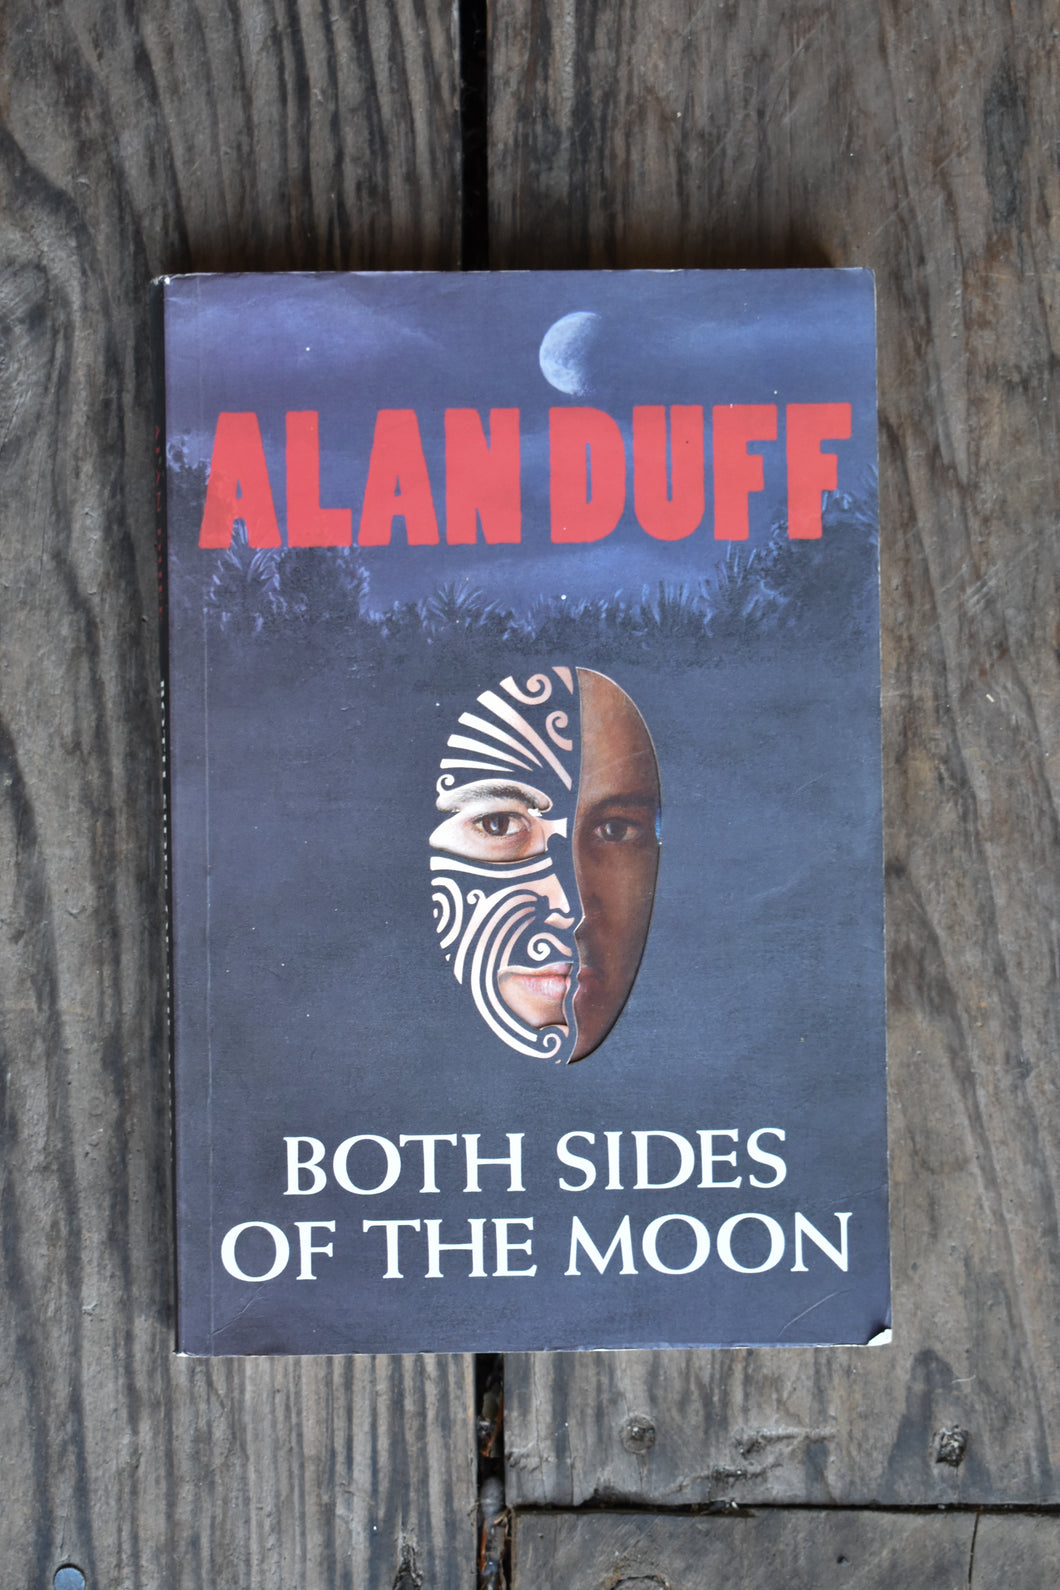 Both Sides of the Moon by Alan Duff